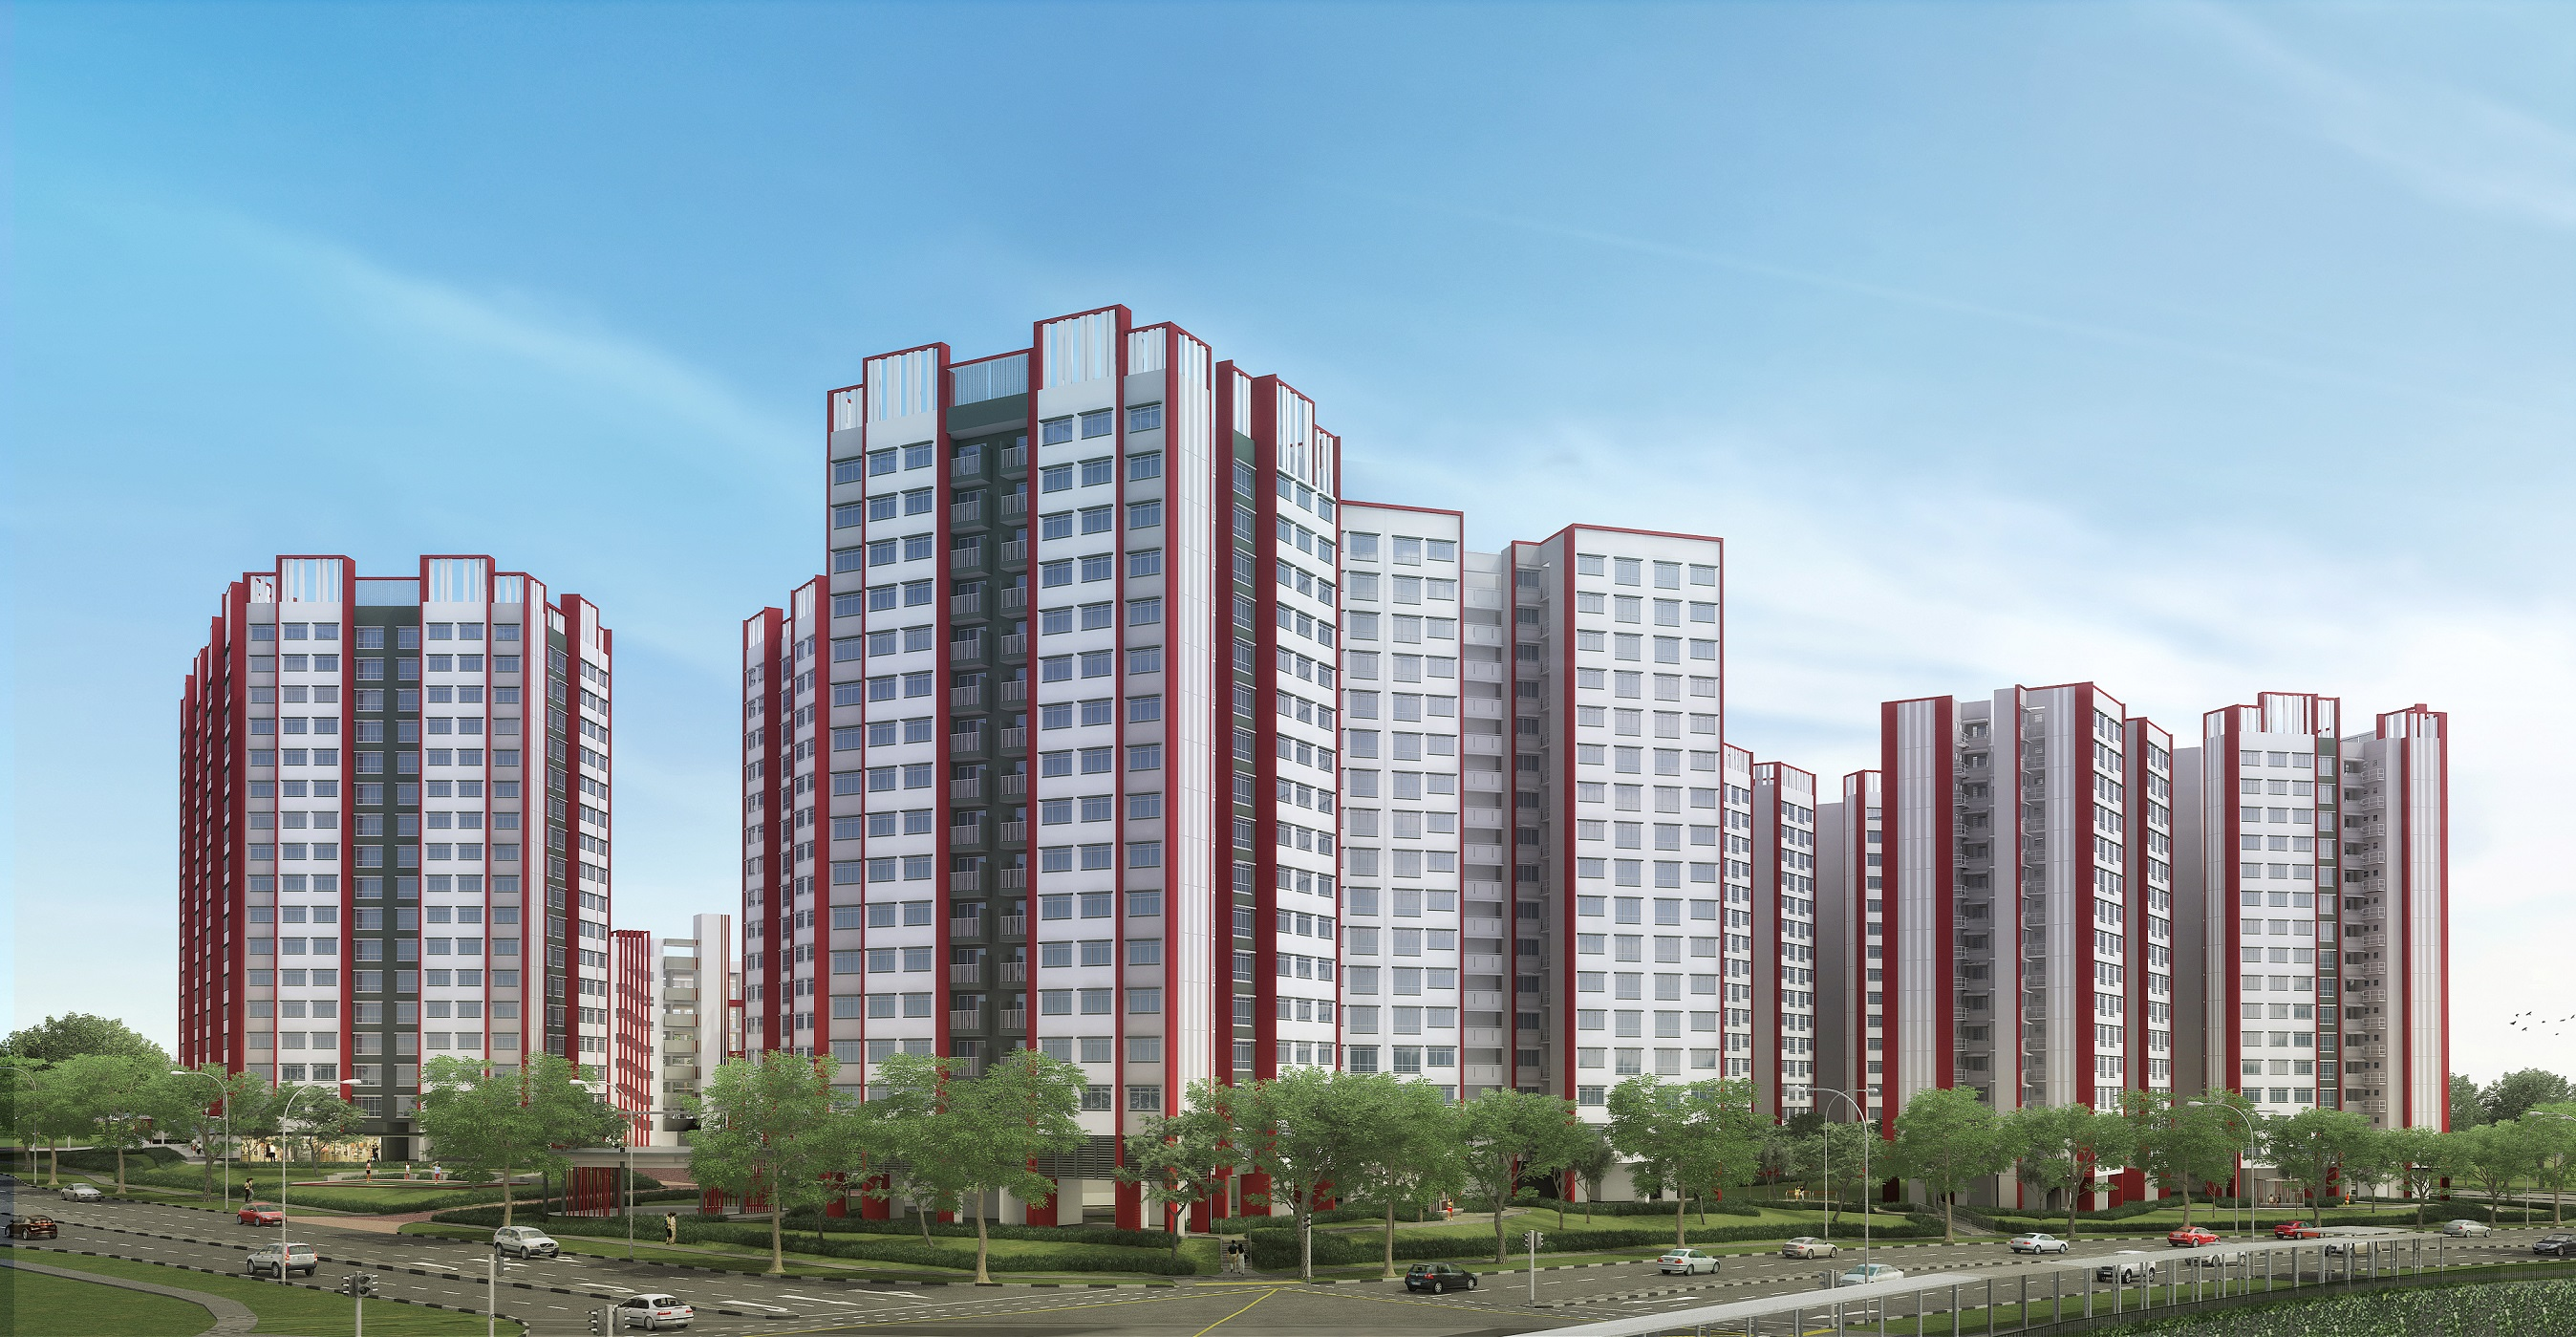 Flat buyers taking an HDB housing loan will have the option of retaining up to SGD20,000 each in their Central Provident Fund (CPF) Ordinary Account (OA). Photo courtesy: hdb.gov.sg